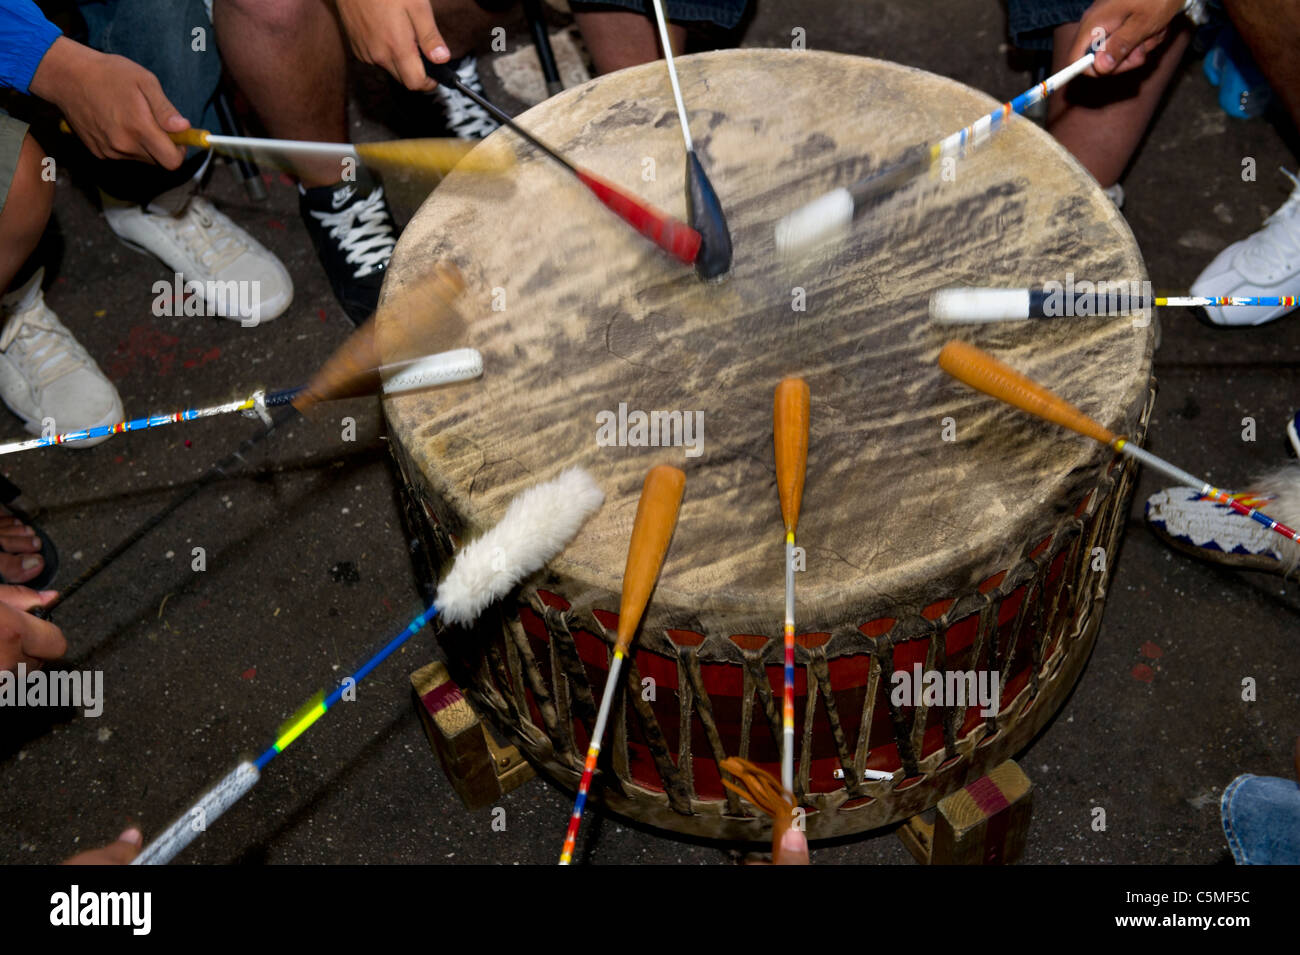 native-drummers-at-the-tsuu-tina-annual-celebration-west-of-calgary-C5MF5C.jpg